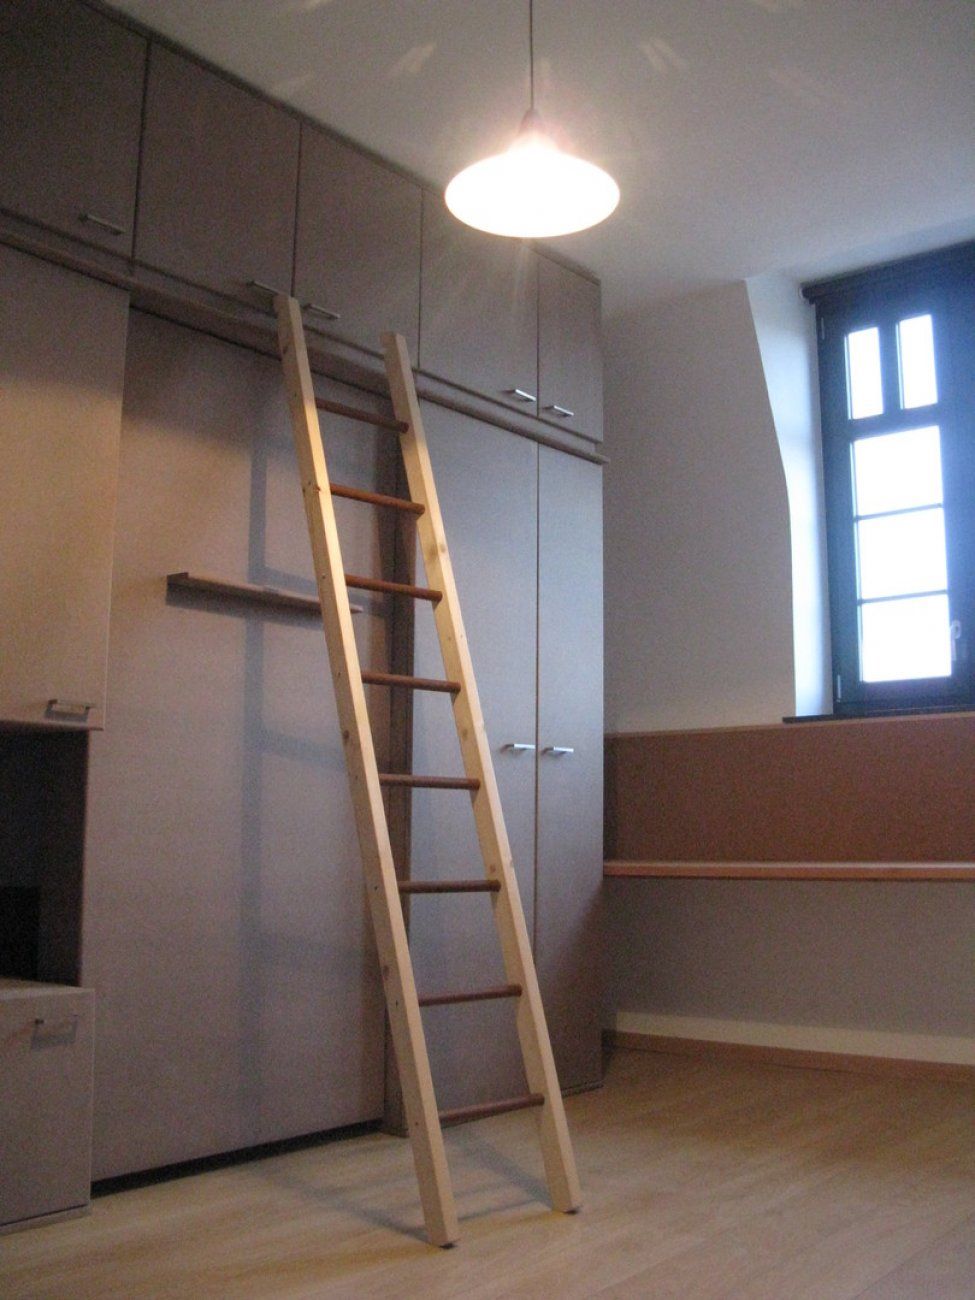 KN 1658 appartement